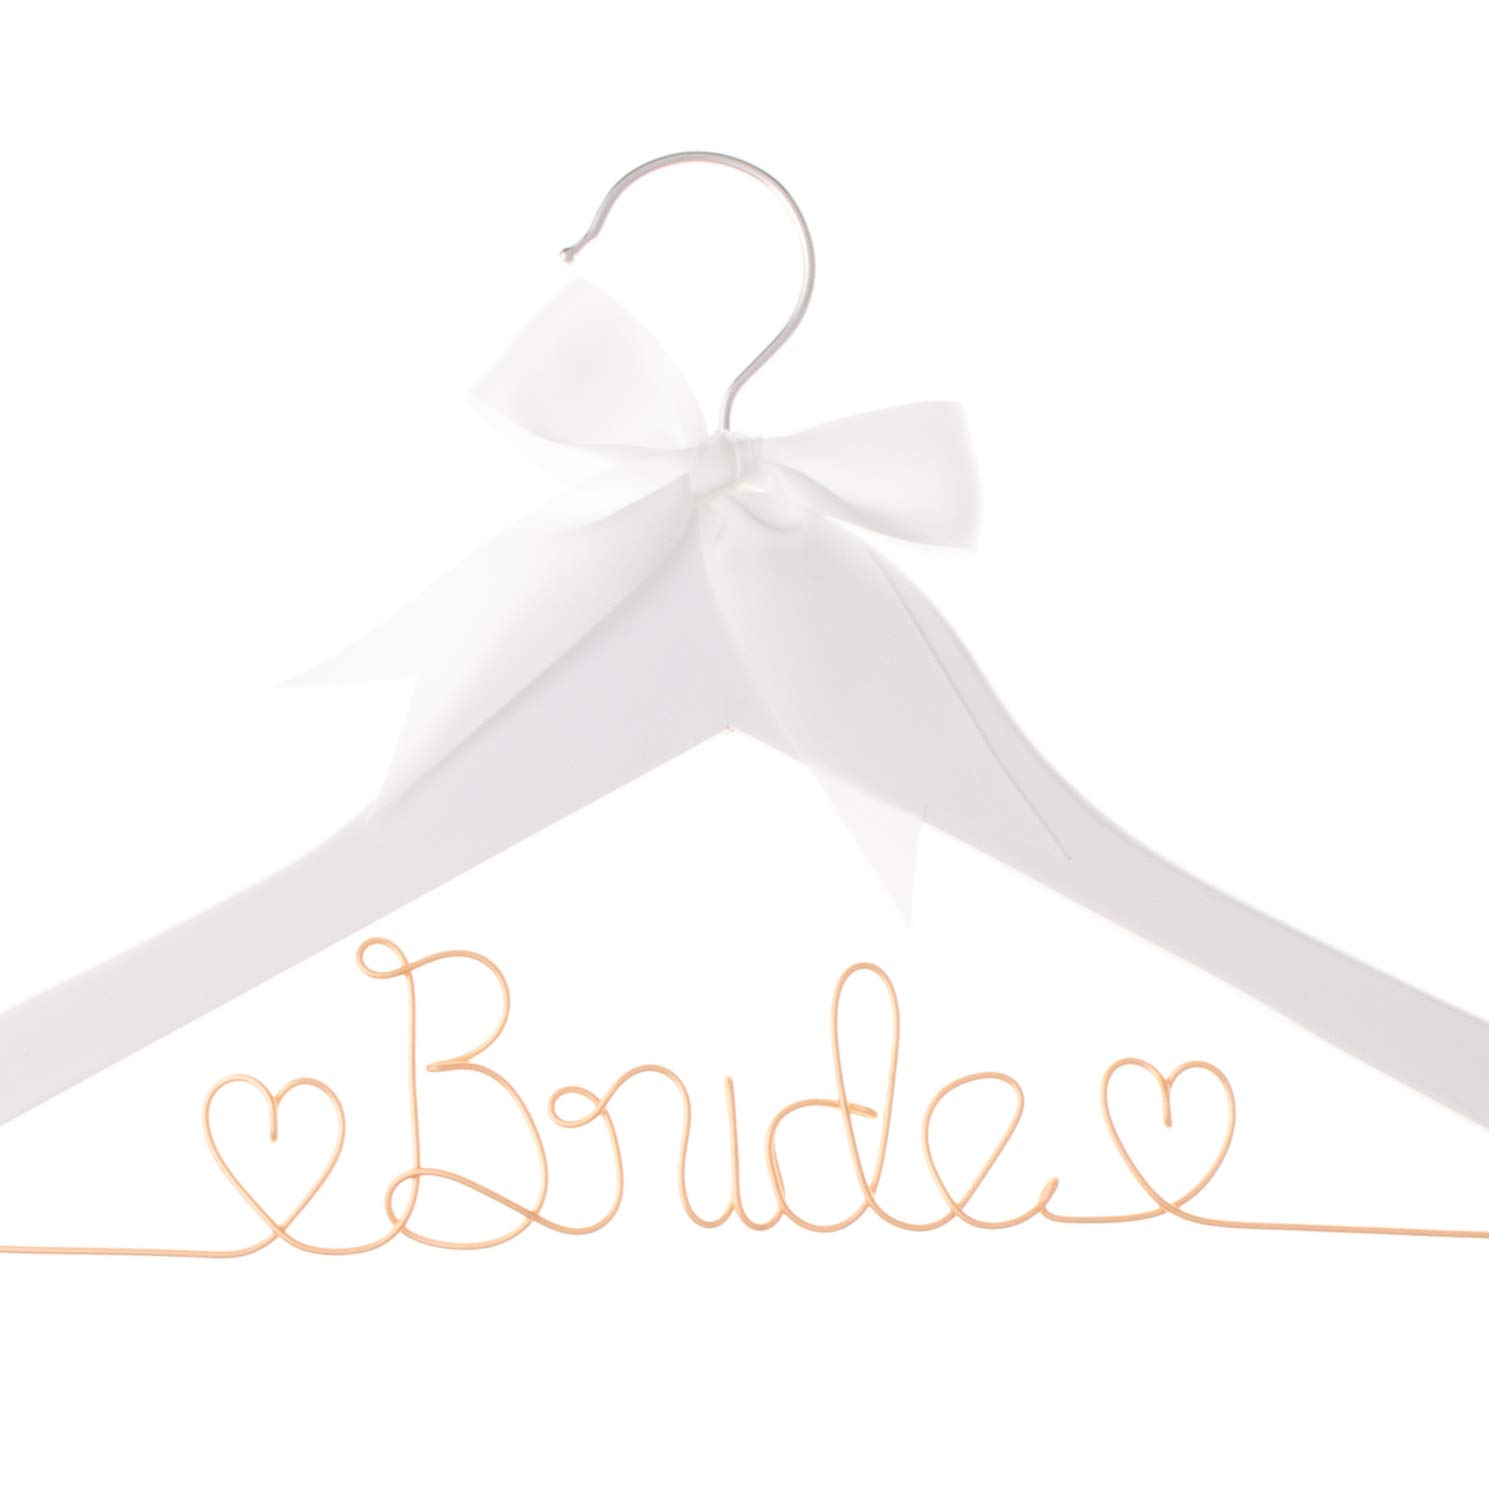 Ella Celebration Bride to Be Wedding Dress Hanger Wooden and Wire Hangers for Brides Gowns, Dresses (White with Rose Gold Wire) by Ella Celebration